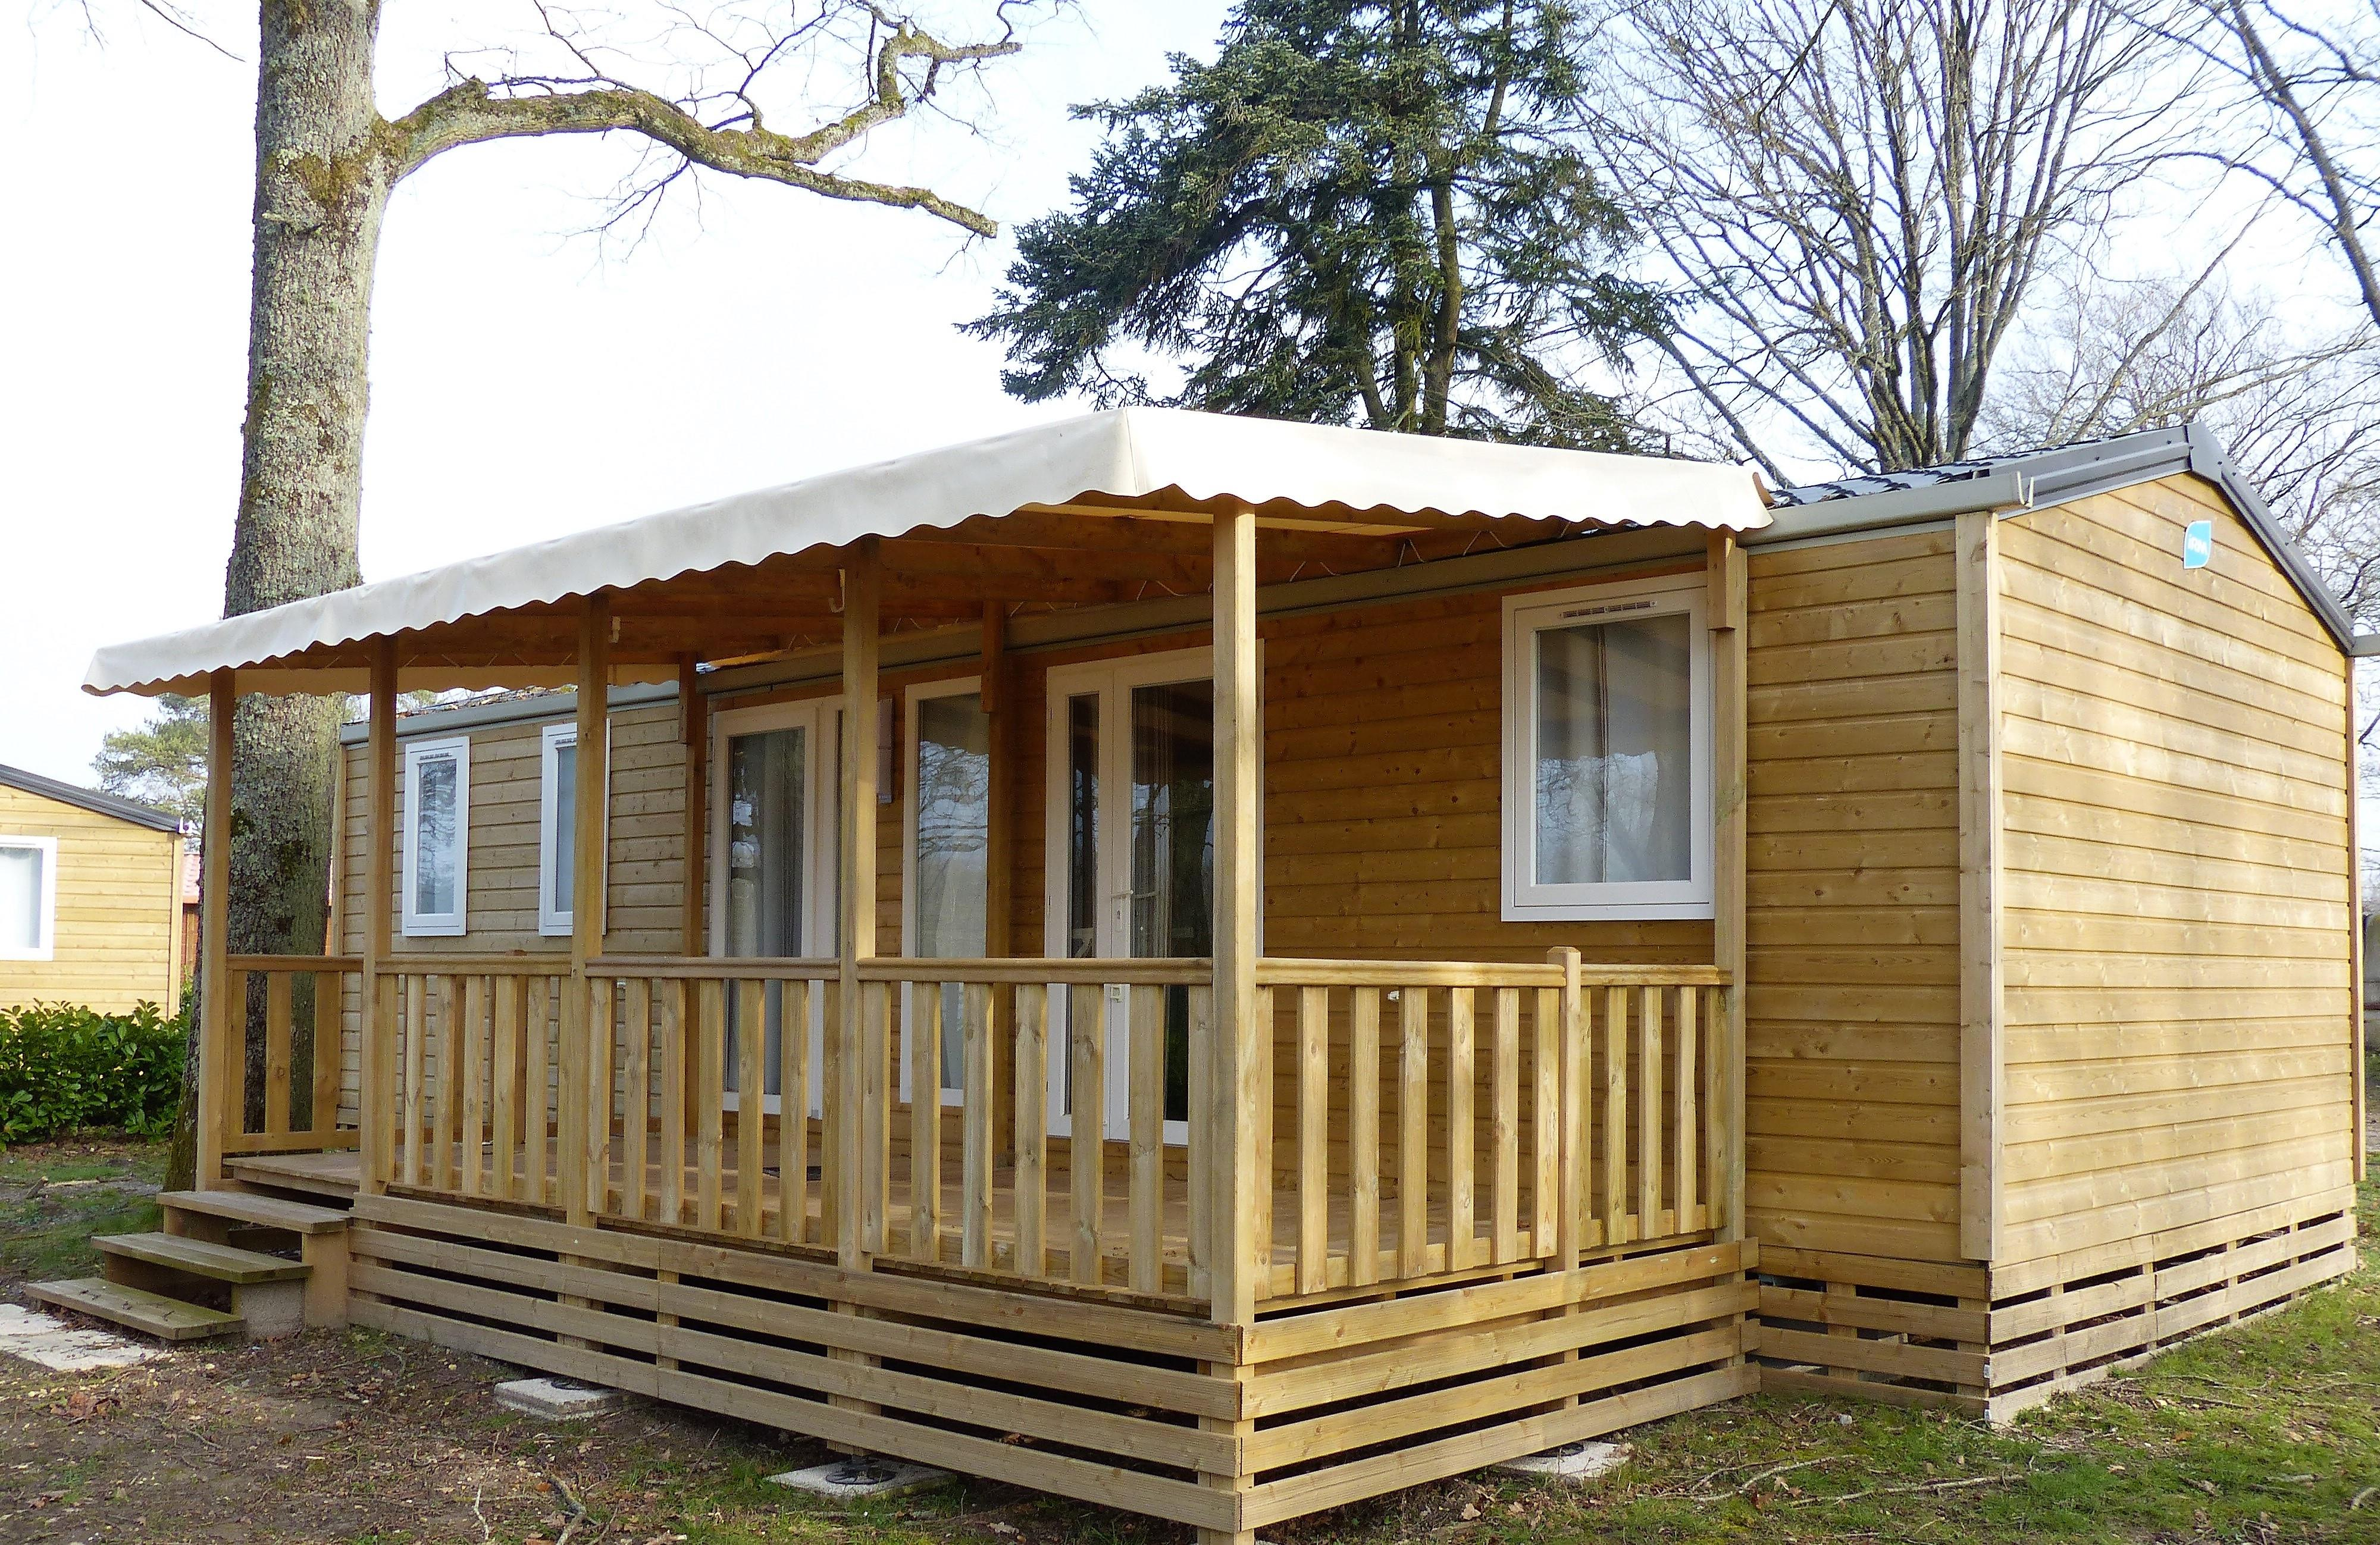 Locatifs - Mobilhome Bois 3 Chambres - 40M² Standing - Camping des Etangs